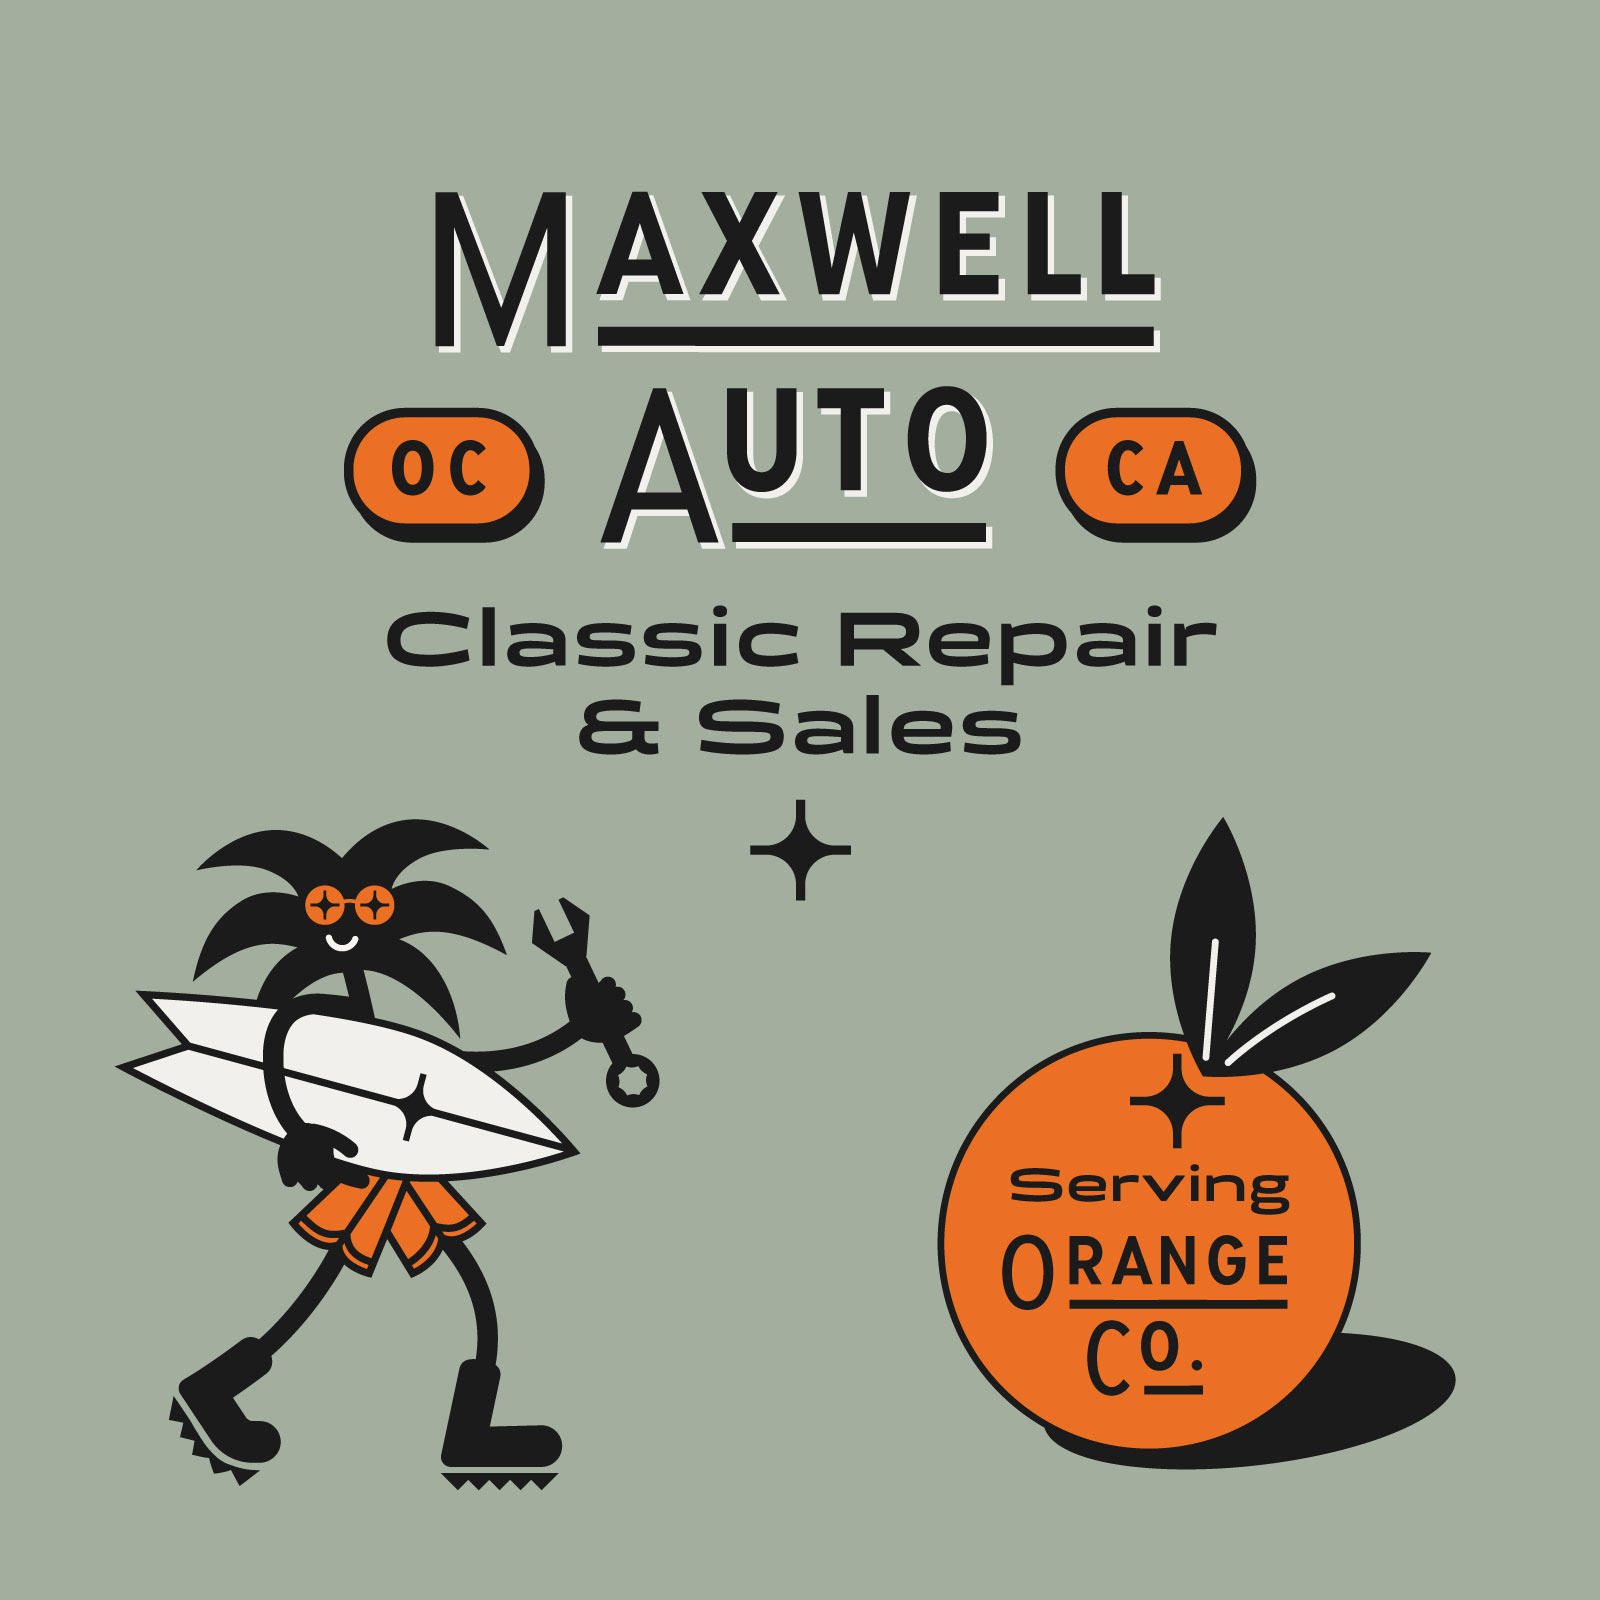 Chapman Ave Font Maxwell Auto Logo system color